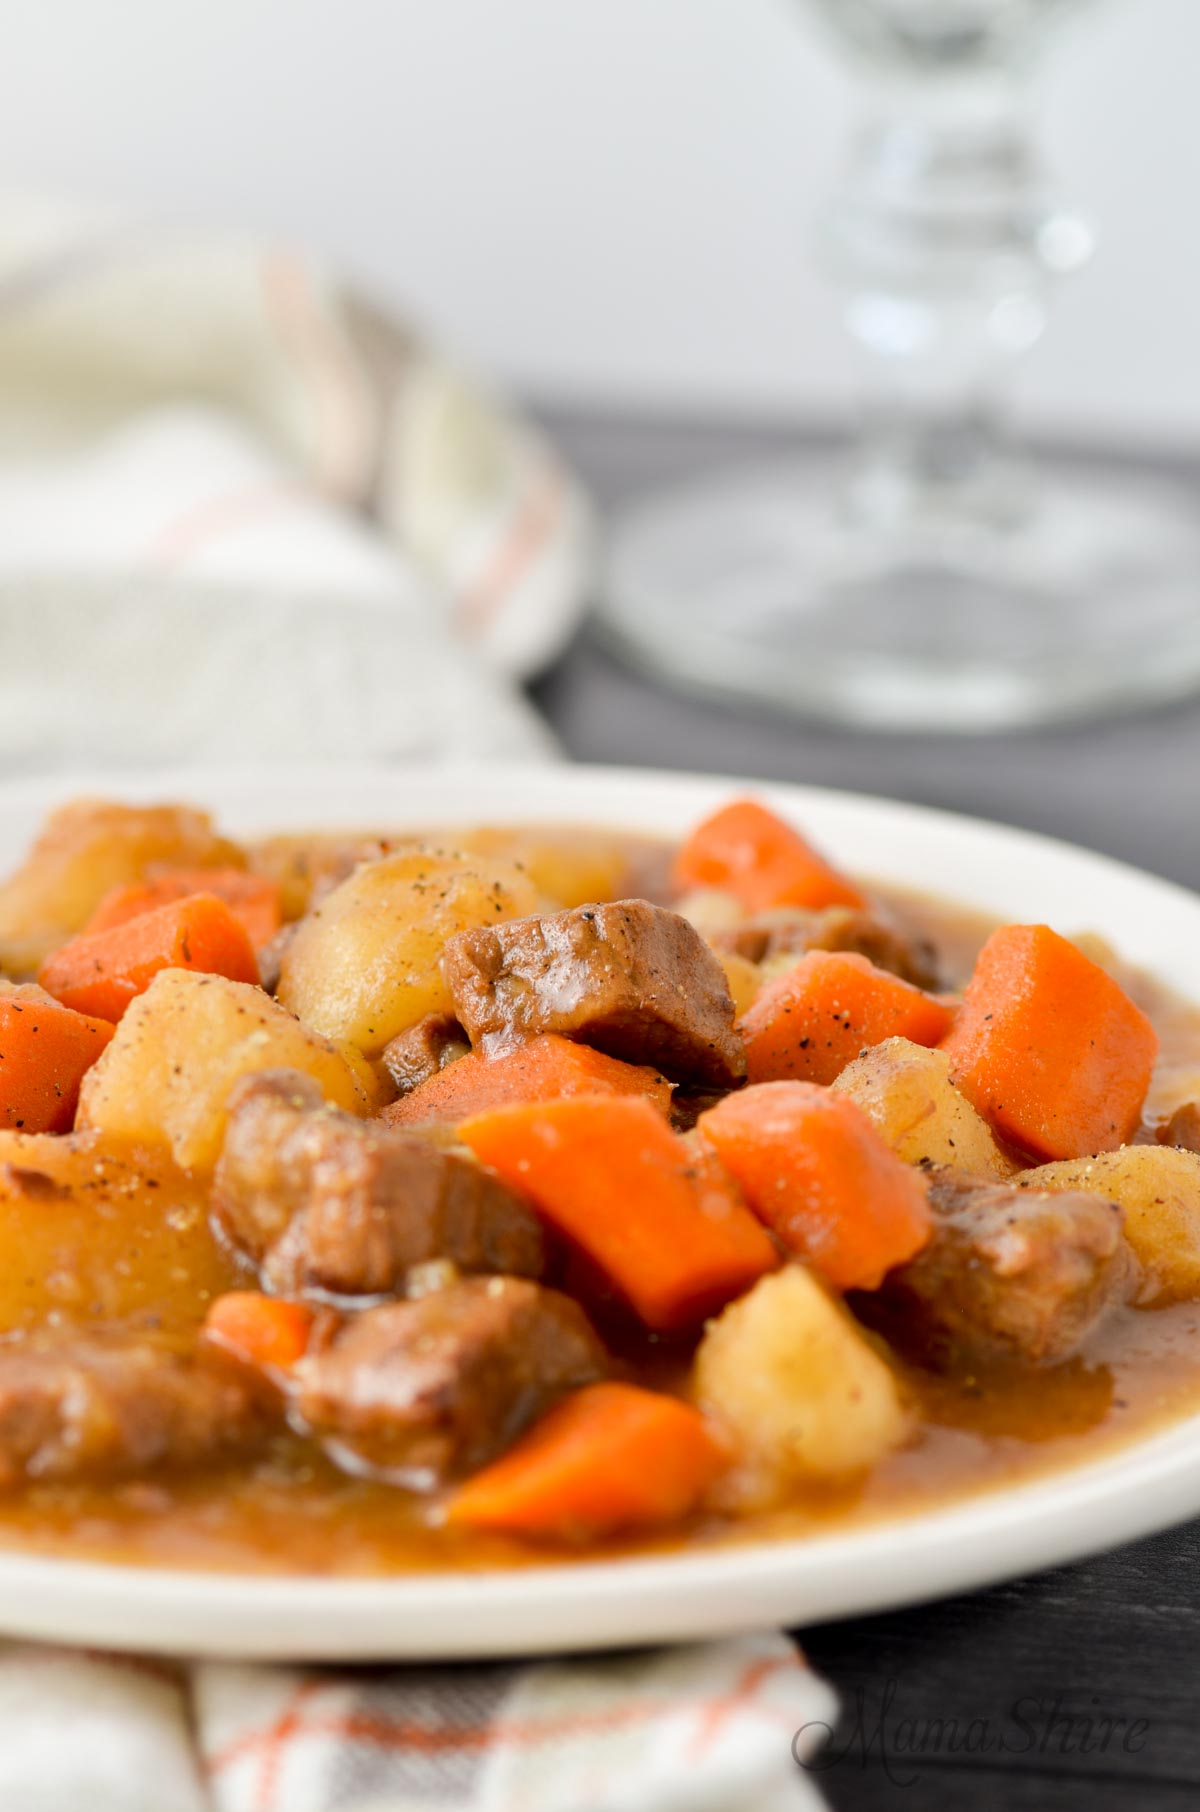 Instant Pot beef stew on a white plate.